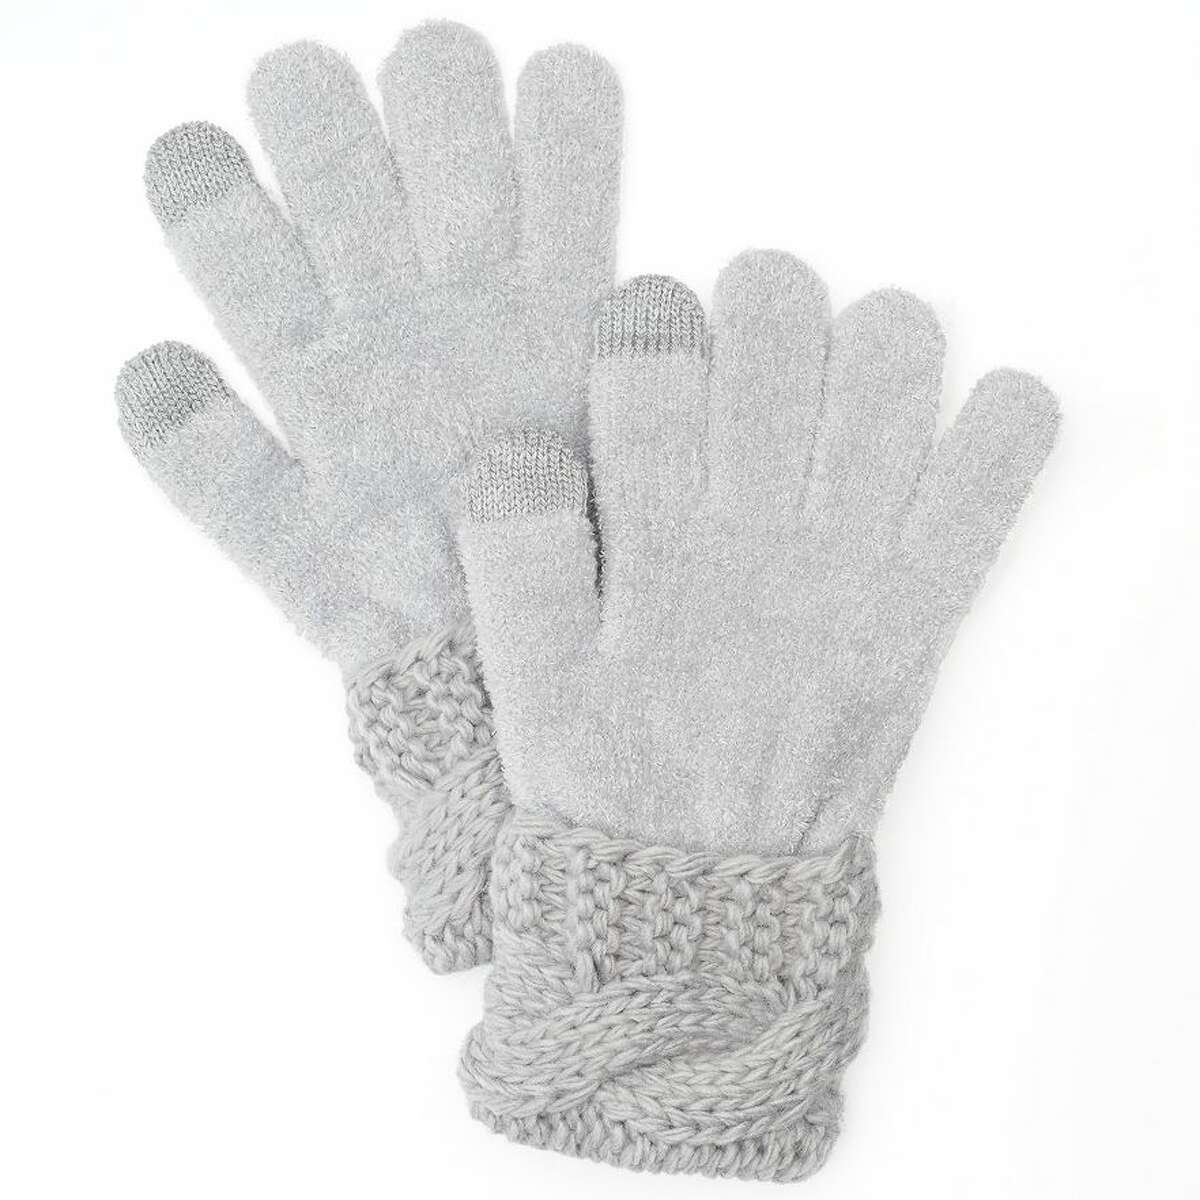 Microchenille Tech Gloves, Sonoma life + style. $24 When in constant need to communicate with your boss, coworkers, friends, and family, your hands are always out as your fingers type away on your phone. But with these gloves your fingers don't have to turn to ice this winter. The gloves allow your hands to stay warm while using a touch screen. That means you don't have to postpone making calls or sending texts just because you have gloves on, and you can still have fun using apps and taking pictures. To buy: kohls.com